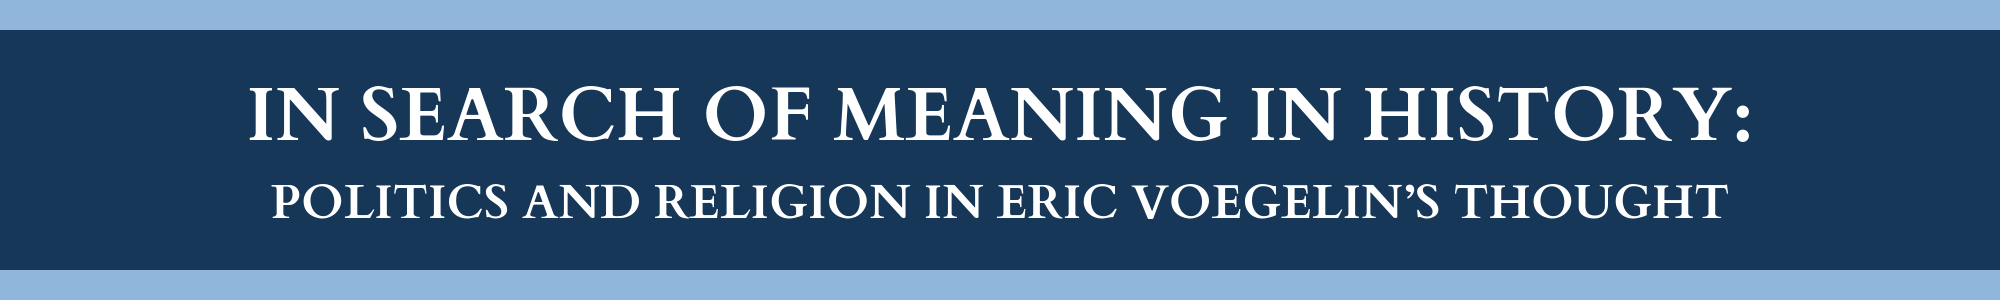 IN SEARCH OF MEANING IN HISTORY_ POLITICS AND RELIGION IN ERIC VOEGELIN'S THOUGHT.png